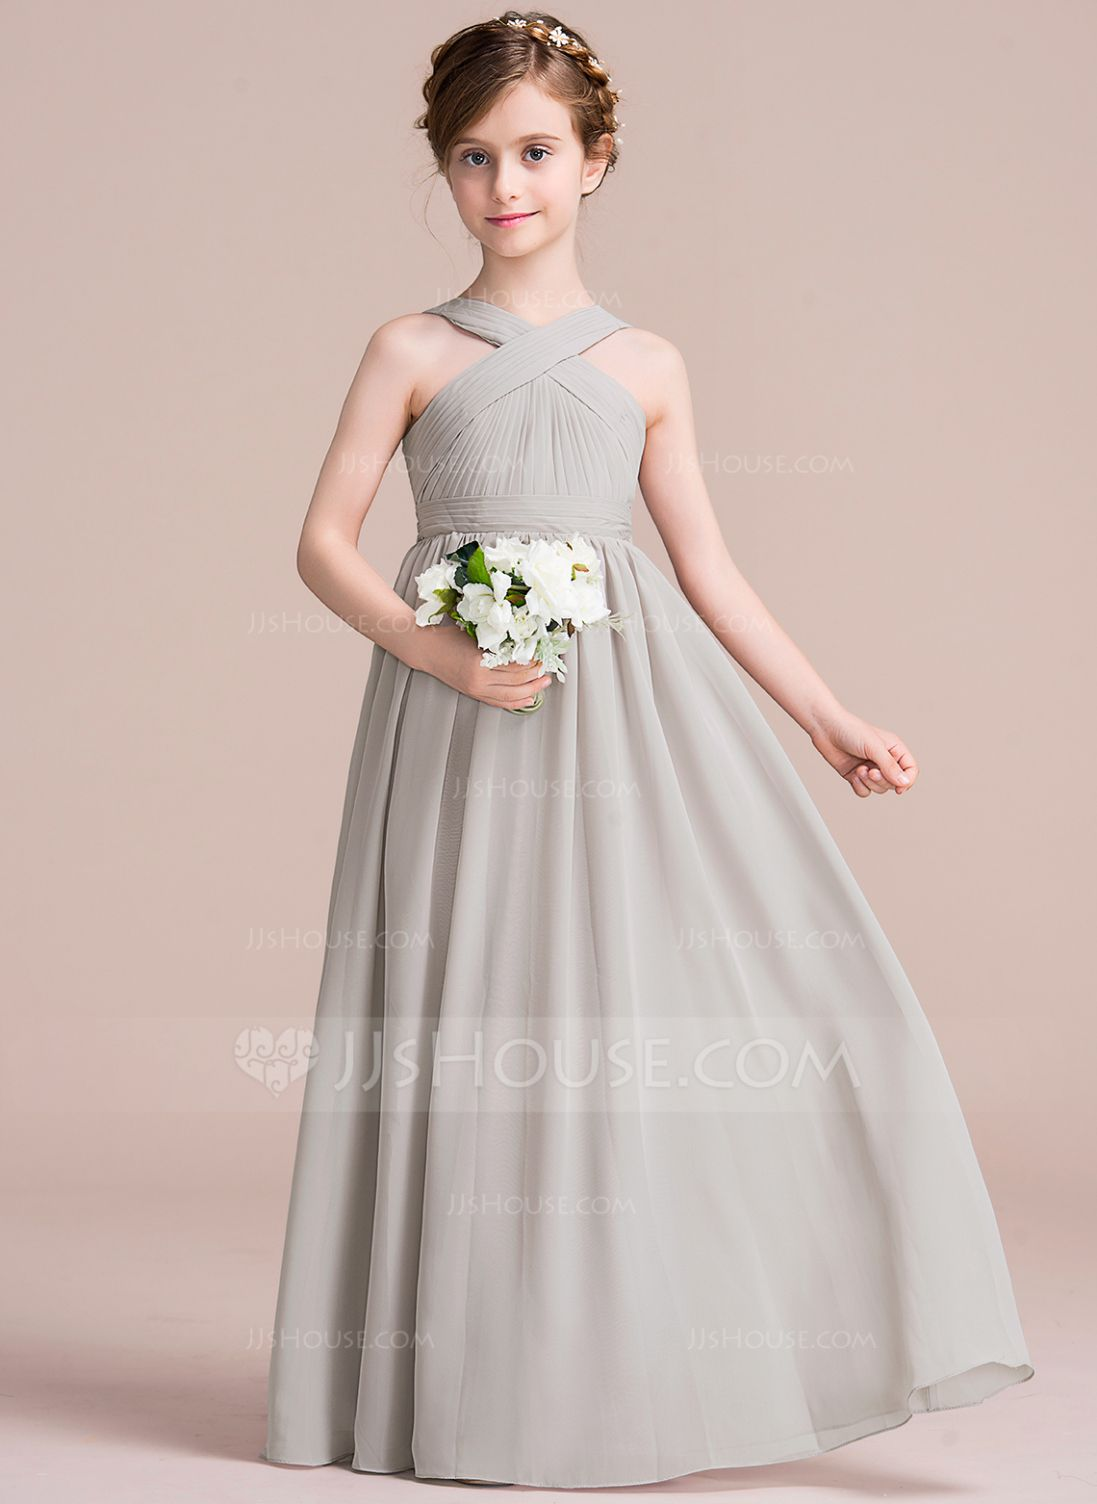 Different color wedding dresses  Best Of Junior Dresses for Wedding Check more at svesty